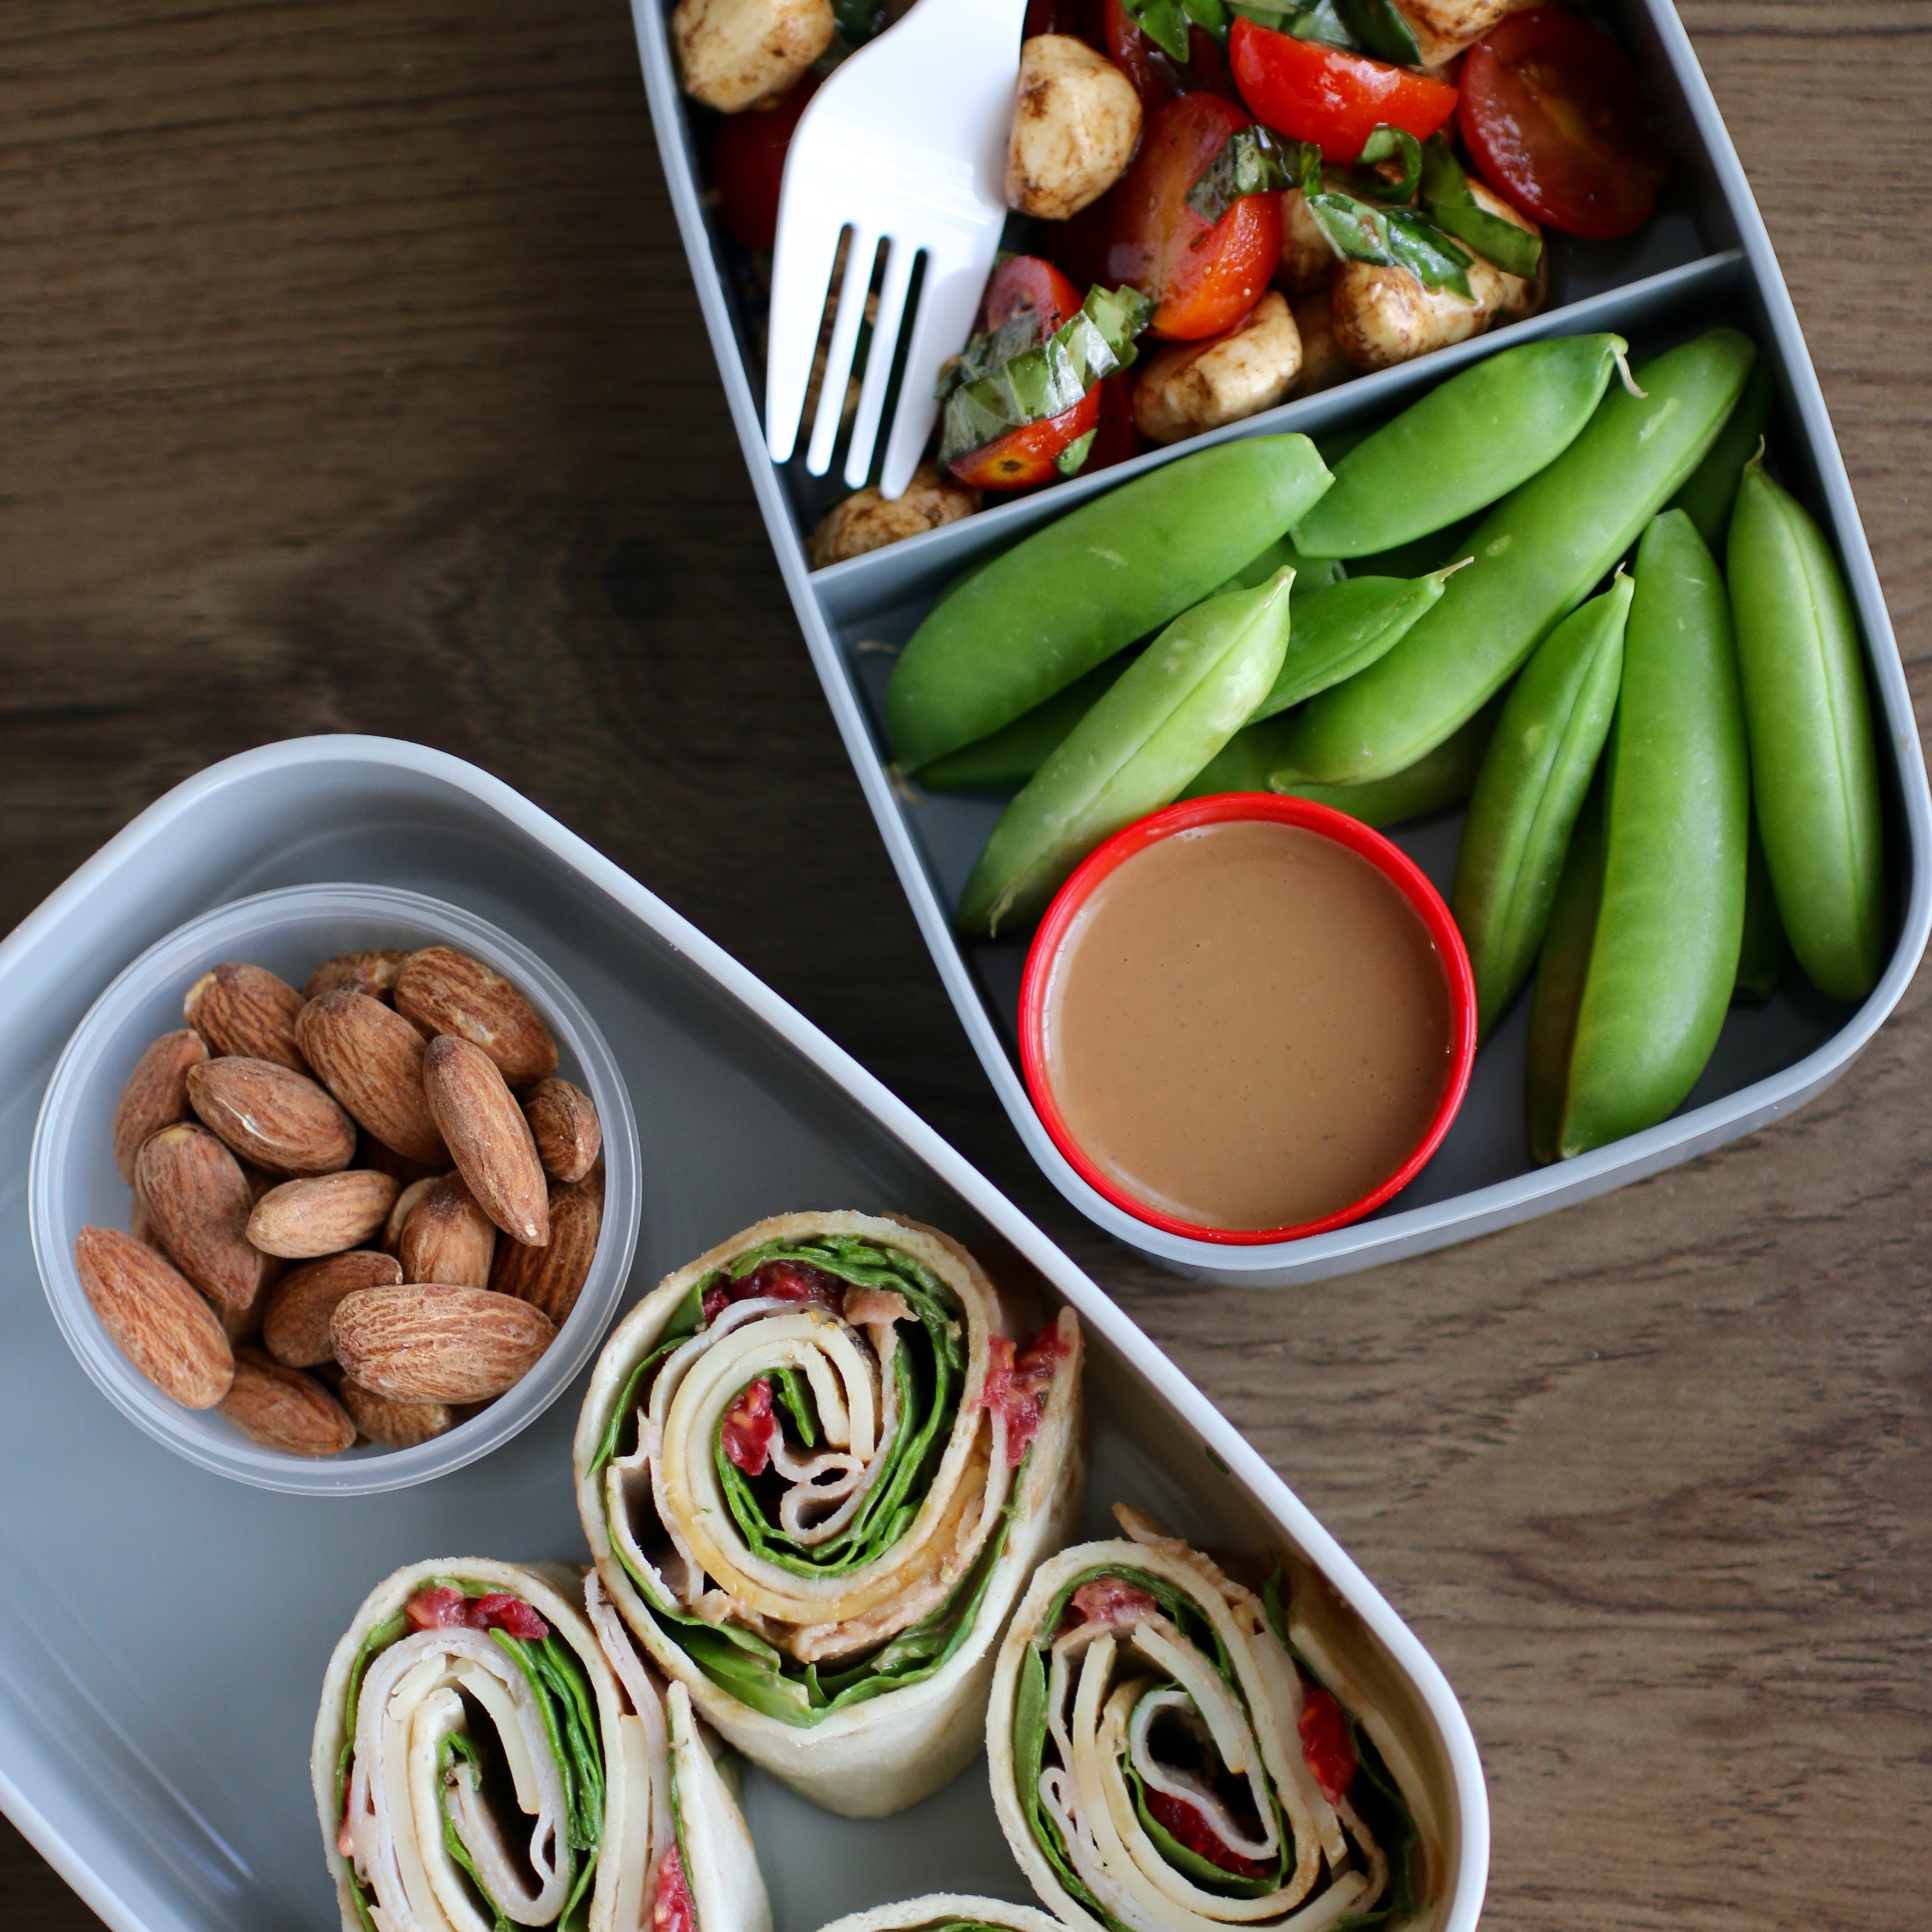 Instead of a wrap, try bite-sized roll-ups. And pair with nuts and edamame or snap peas for some extra healthy fats and protein to boost satiety for hours.